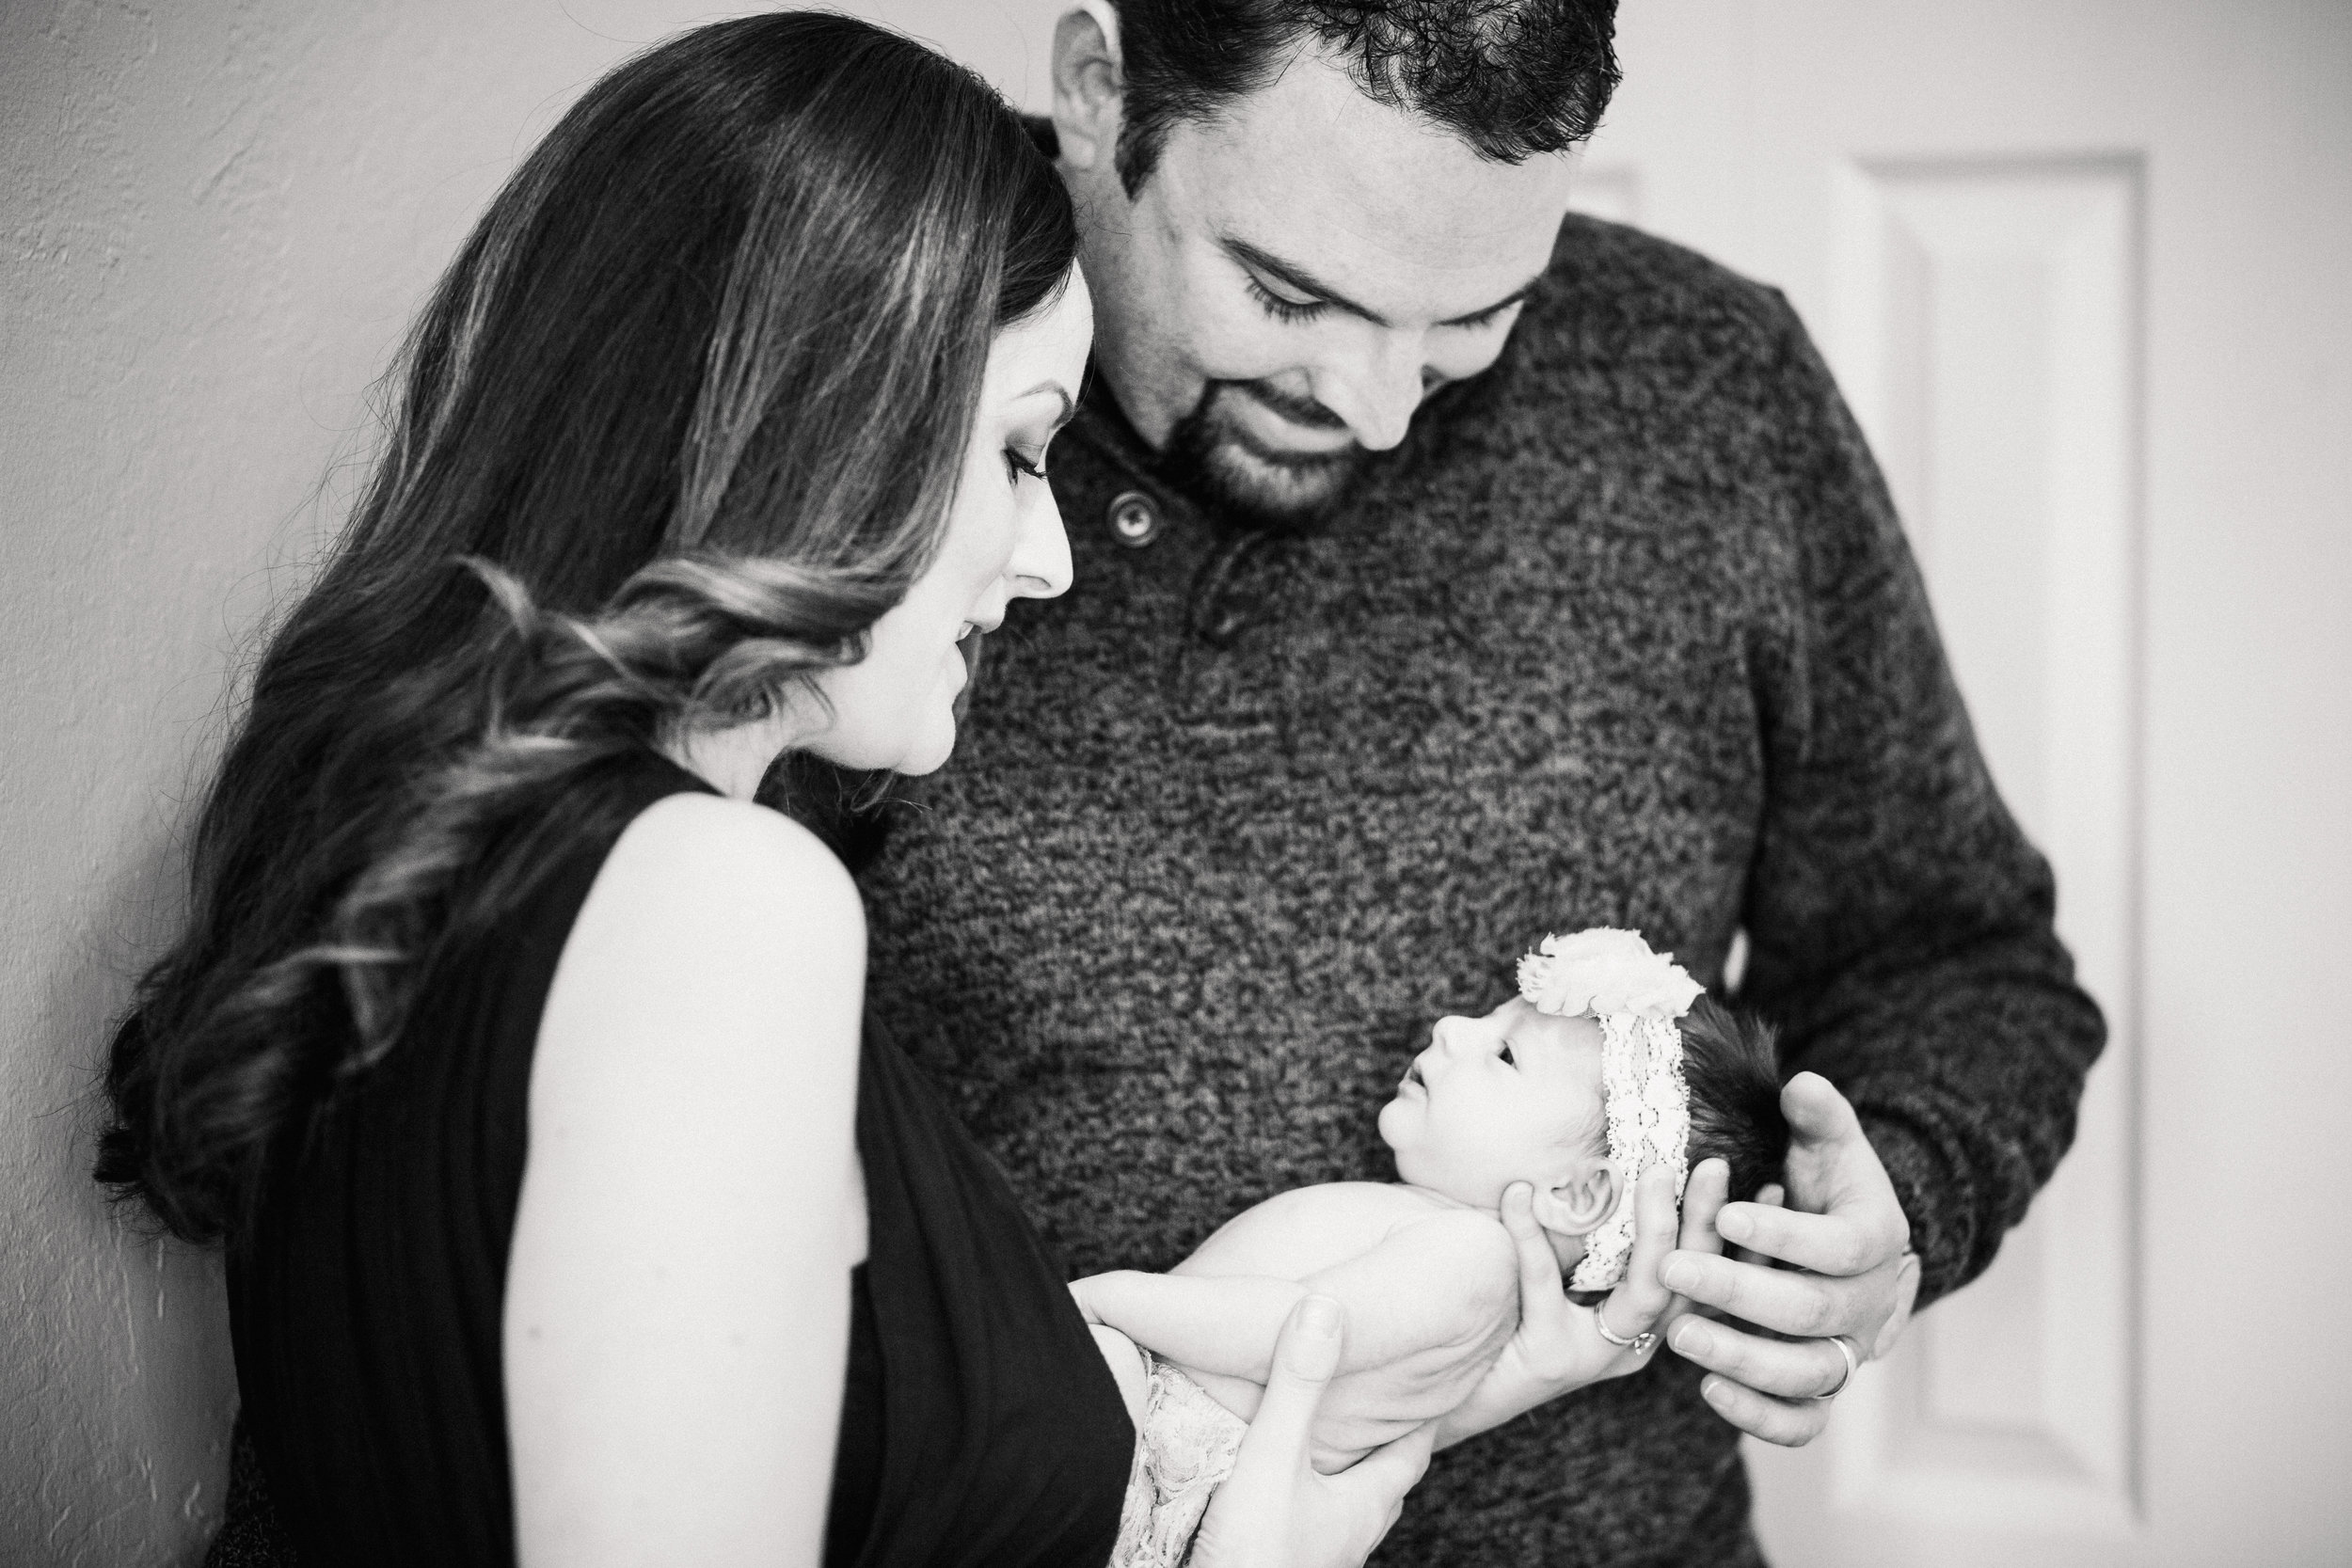 ALacey_Michelle_Photography_LR-9206.jpg